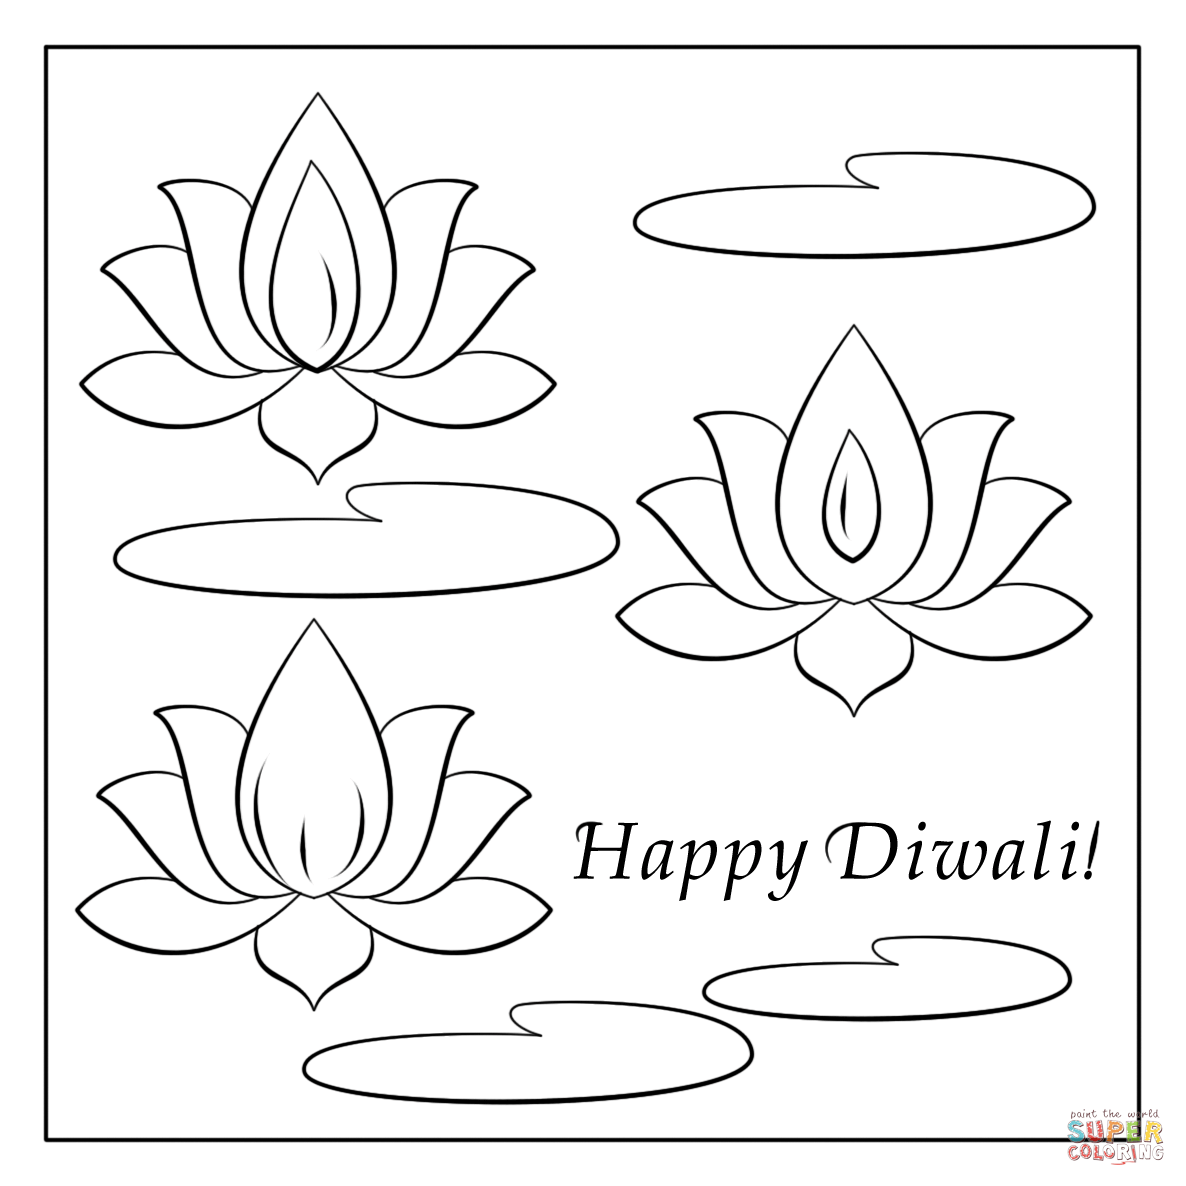 happy diwali card coloring page free printable pages sketch